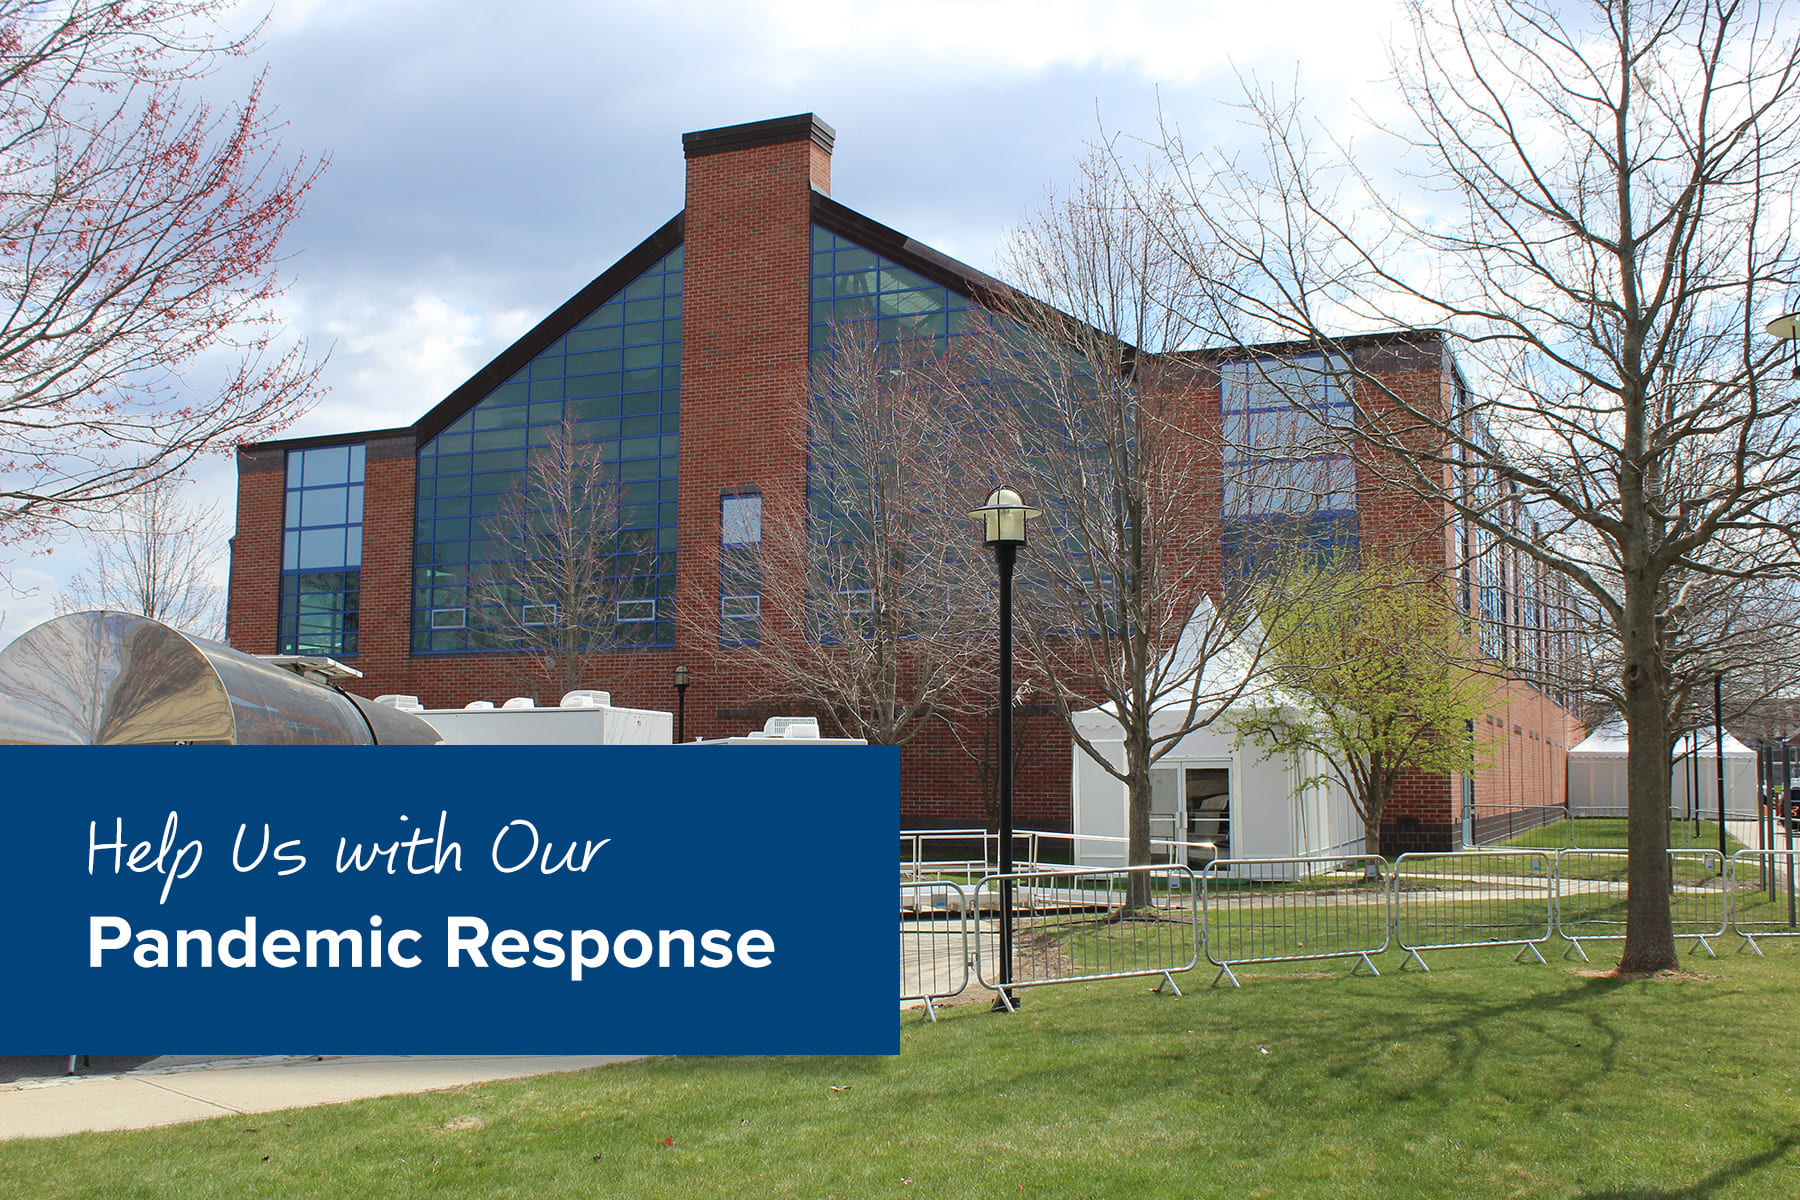 Help Us With Our Pandemic Response